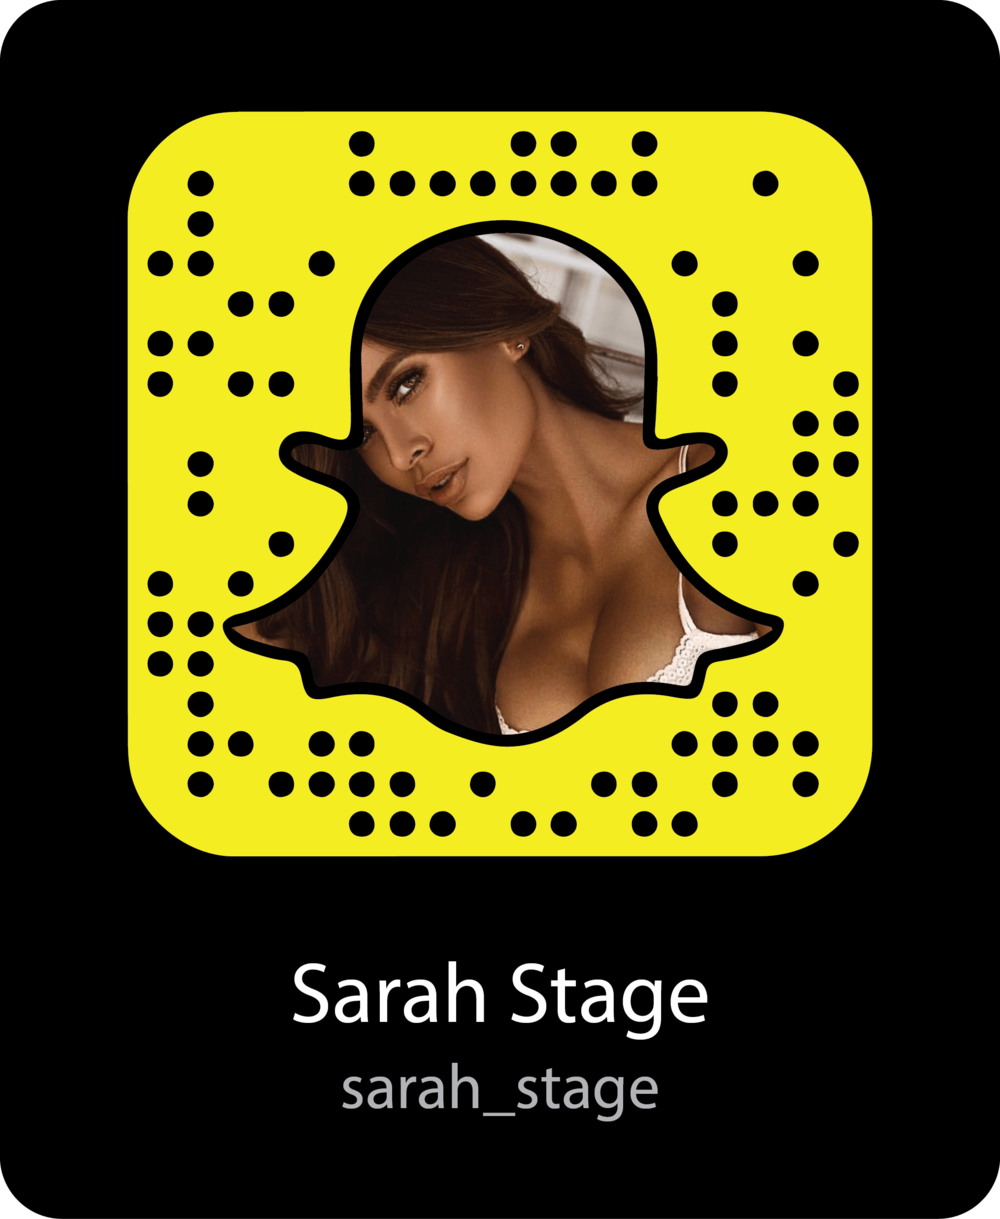 sarah-stage-sexy-snapchat-snapcode